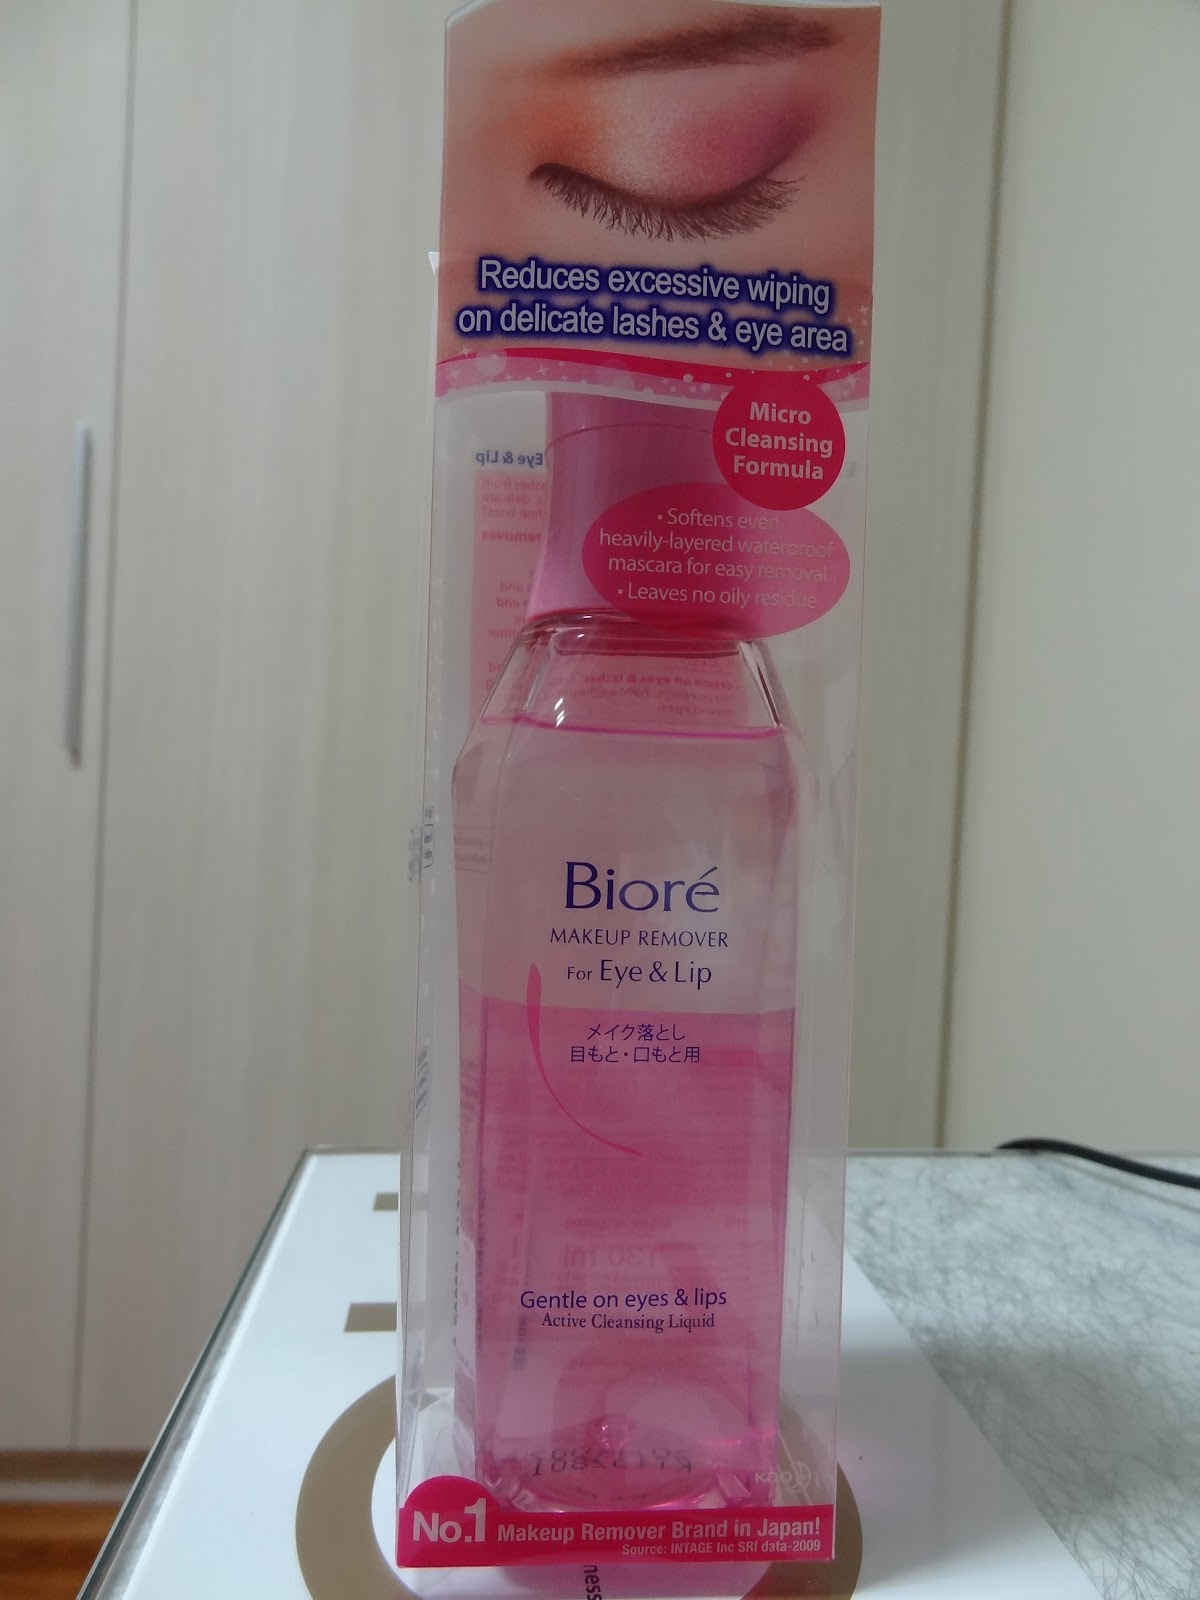 Biore Makeup Remover for Eyes & Lips